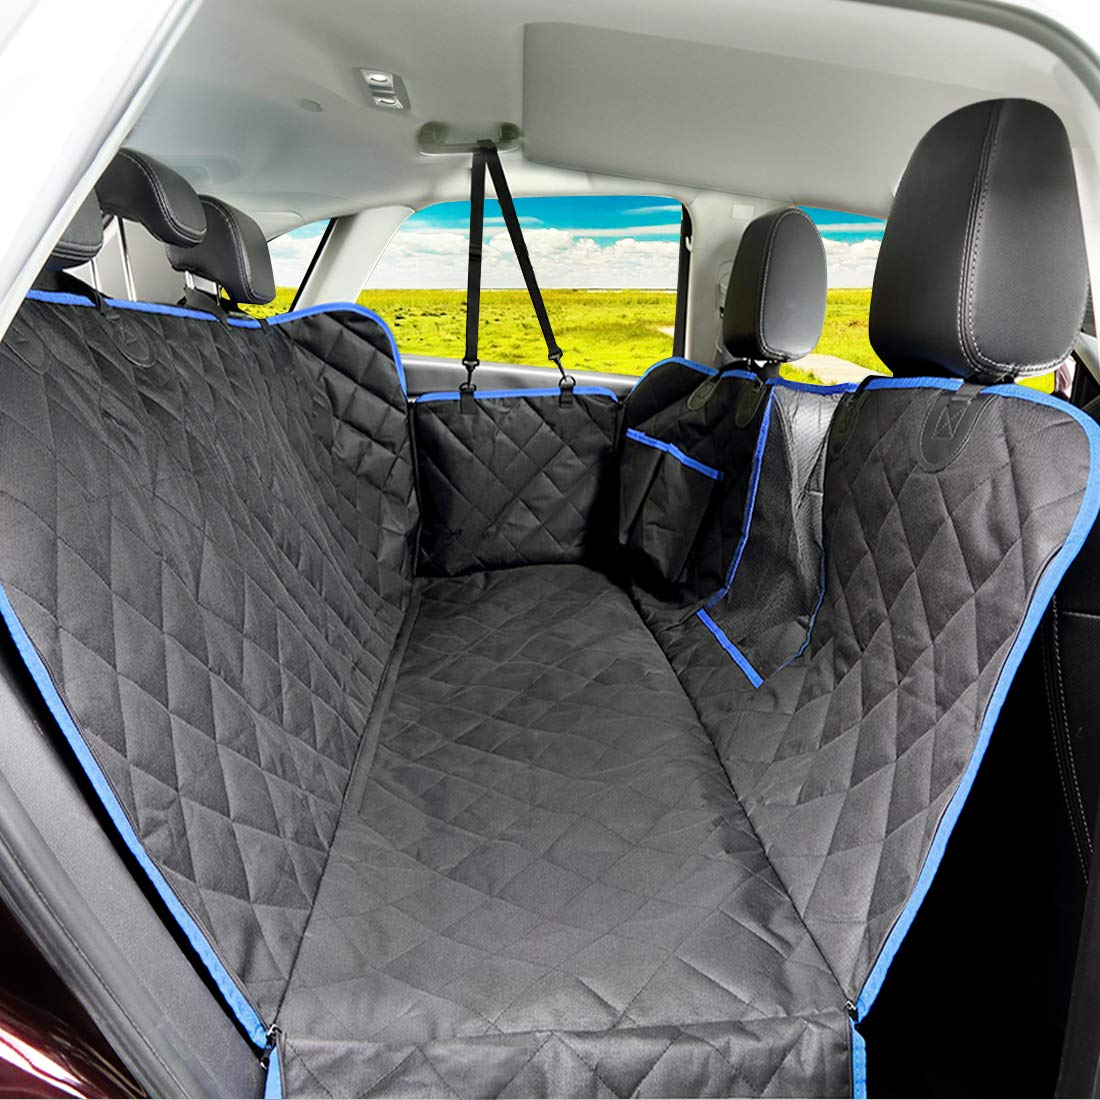 SUPSOO Dog Car Seat Cover Waterproof Durable Anti-Scratch Nonslip Back Seat Pet Protection Dog Travel Hammock with Mesh Window and Side Flaps for Cars/Trucks/SUV by SUPSOO